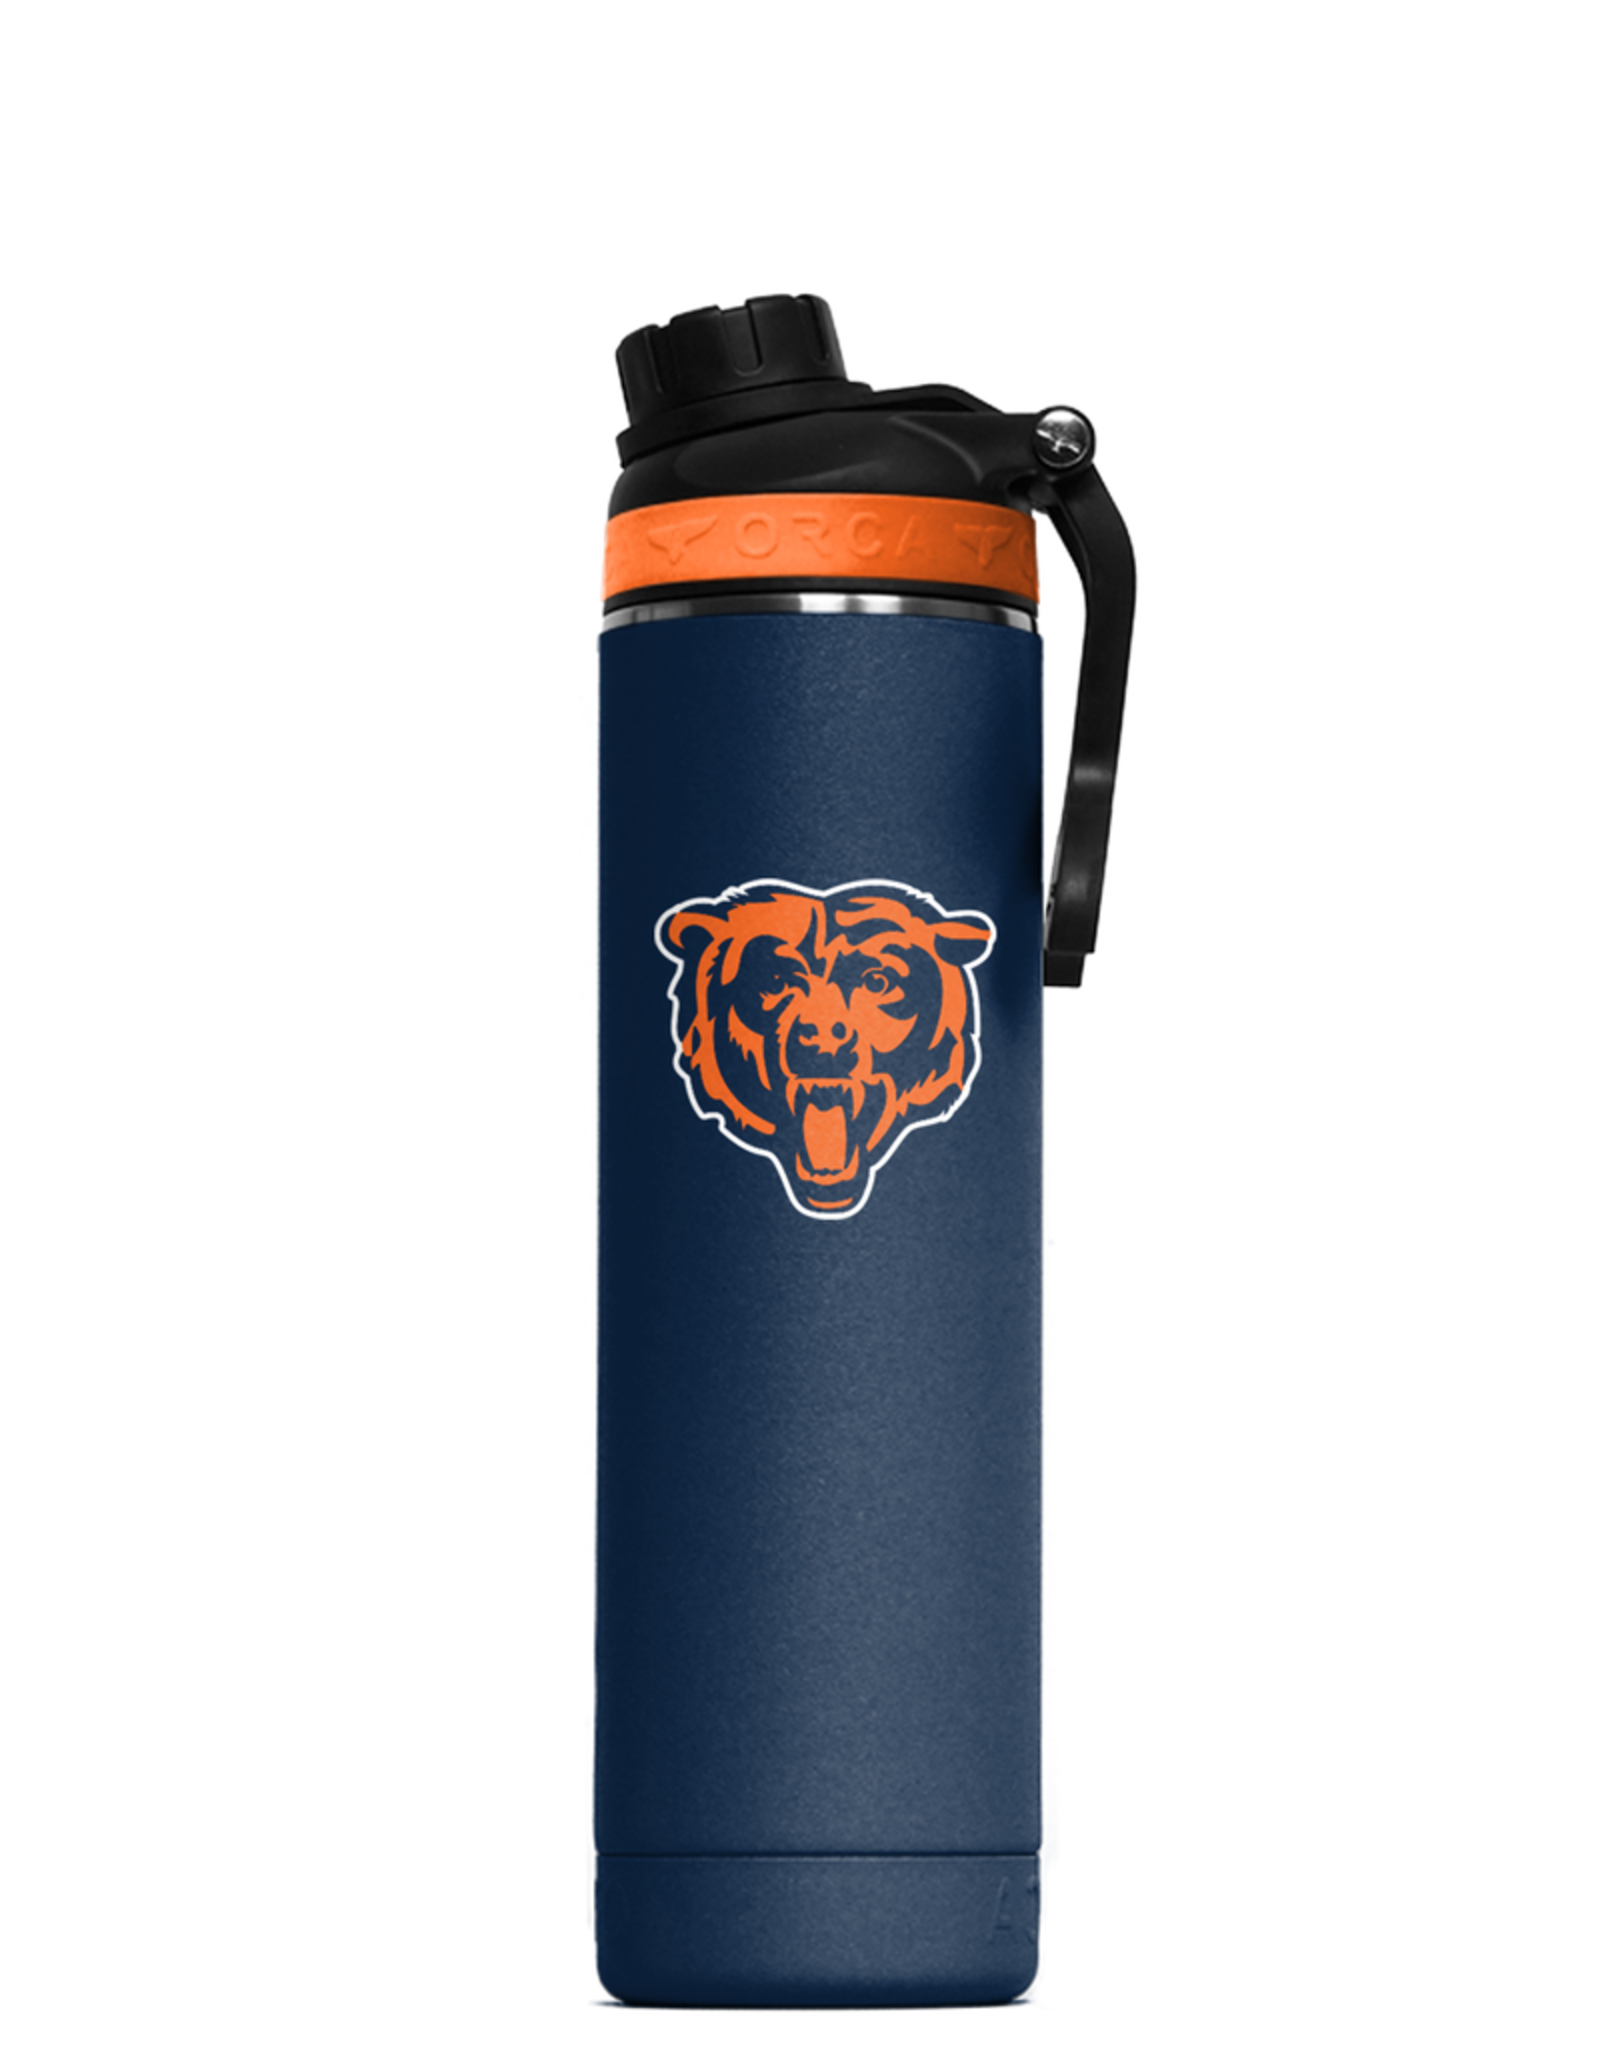 ORCA COOLERS Chicago Bears Orca 22oz Hydra Bottle